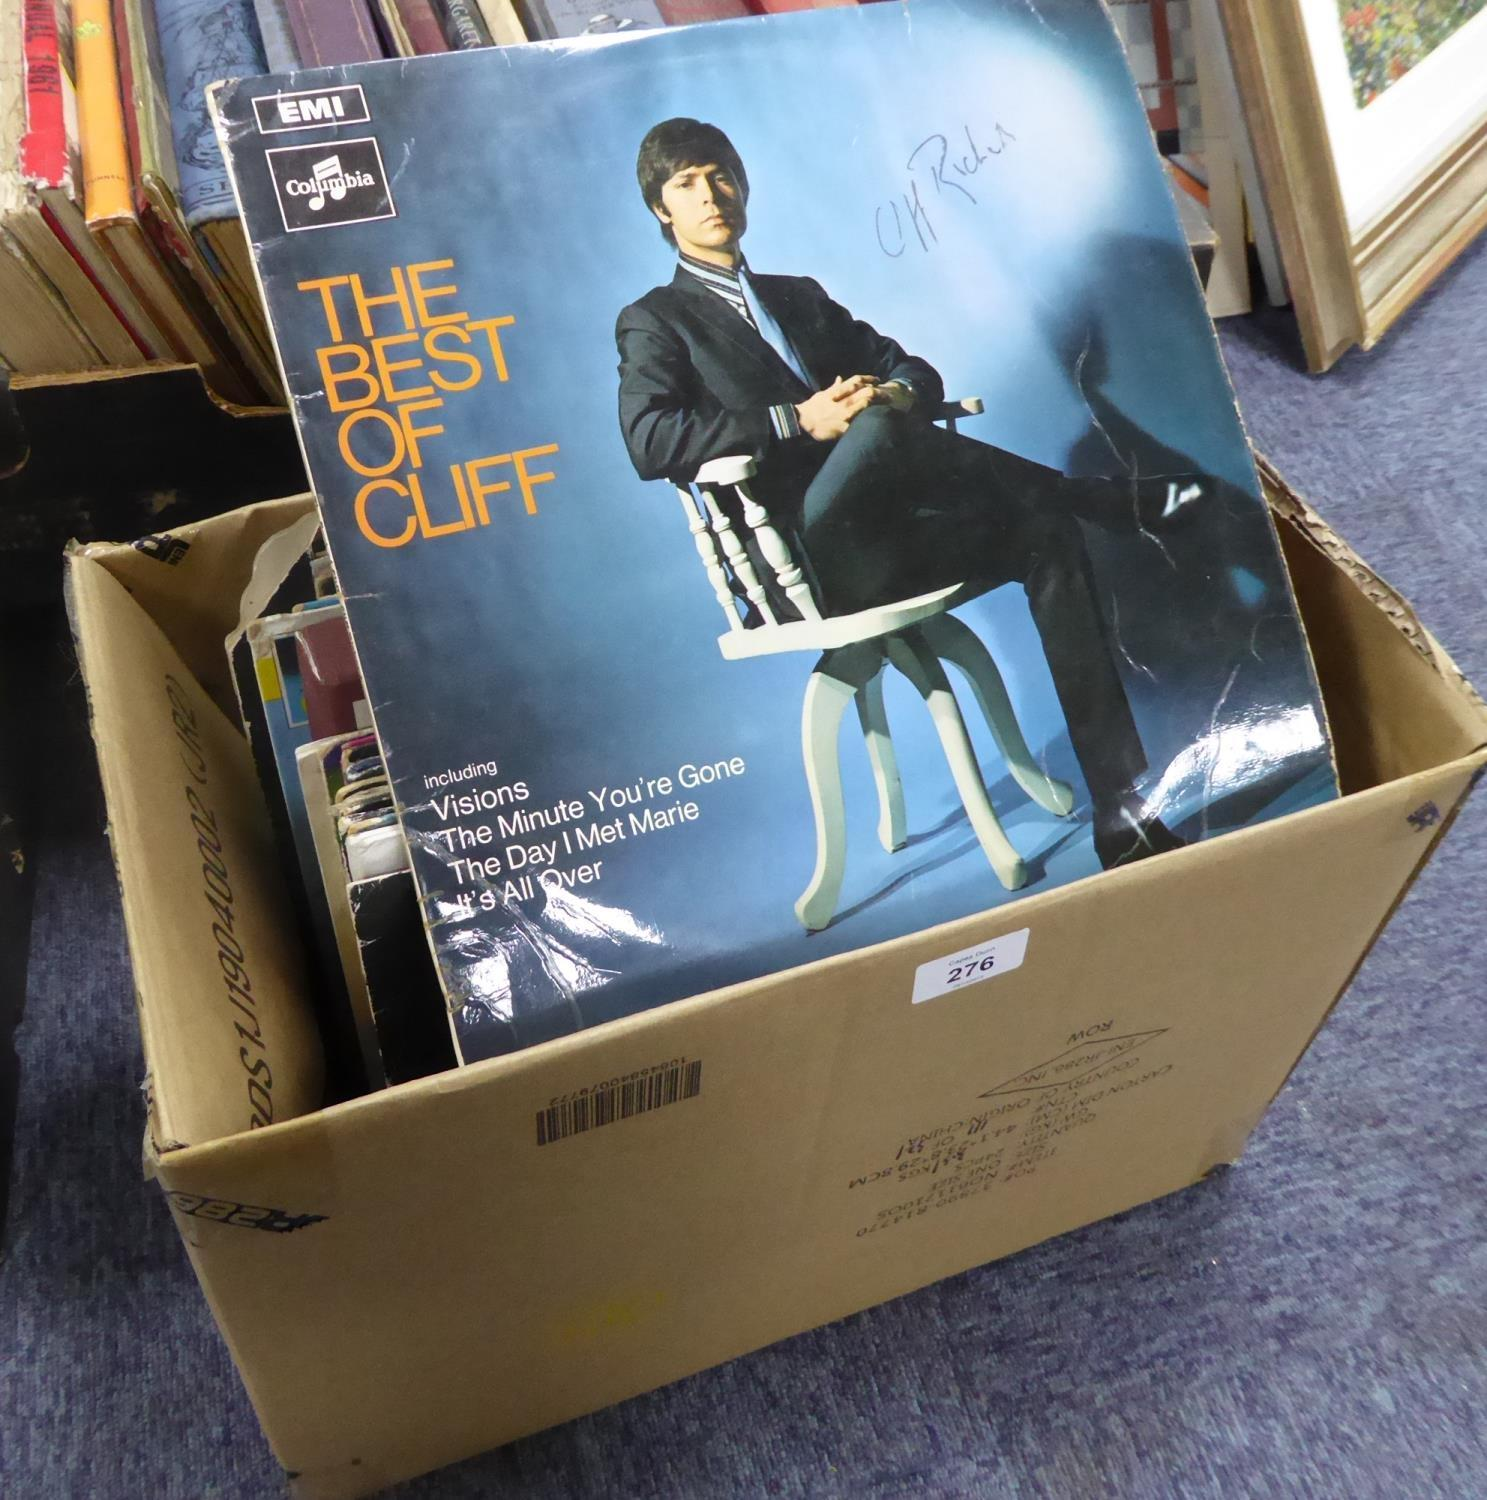 Lot 276 - CLIFF RICHARD- 33RPM VINYL RECORDS, 1960' s and later, including a copy of 'The Best of Cliff',